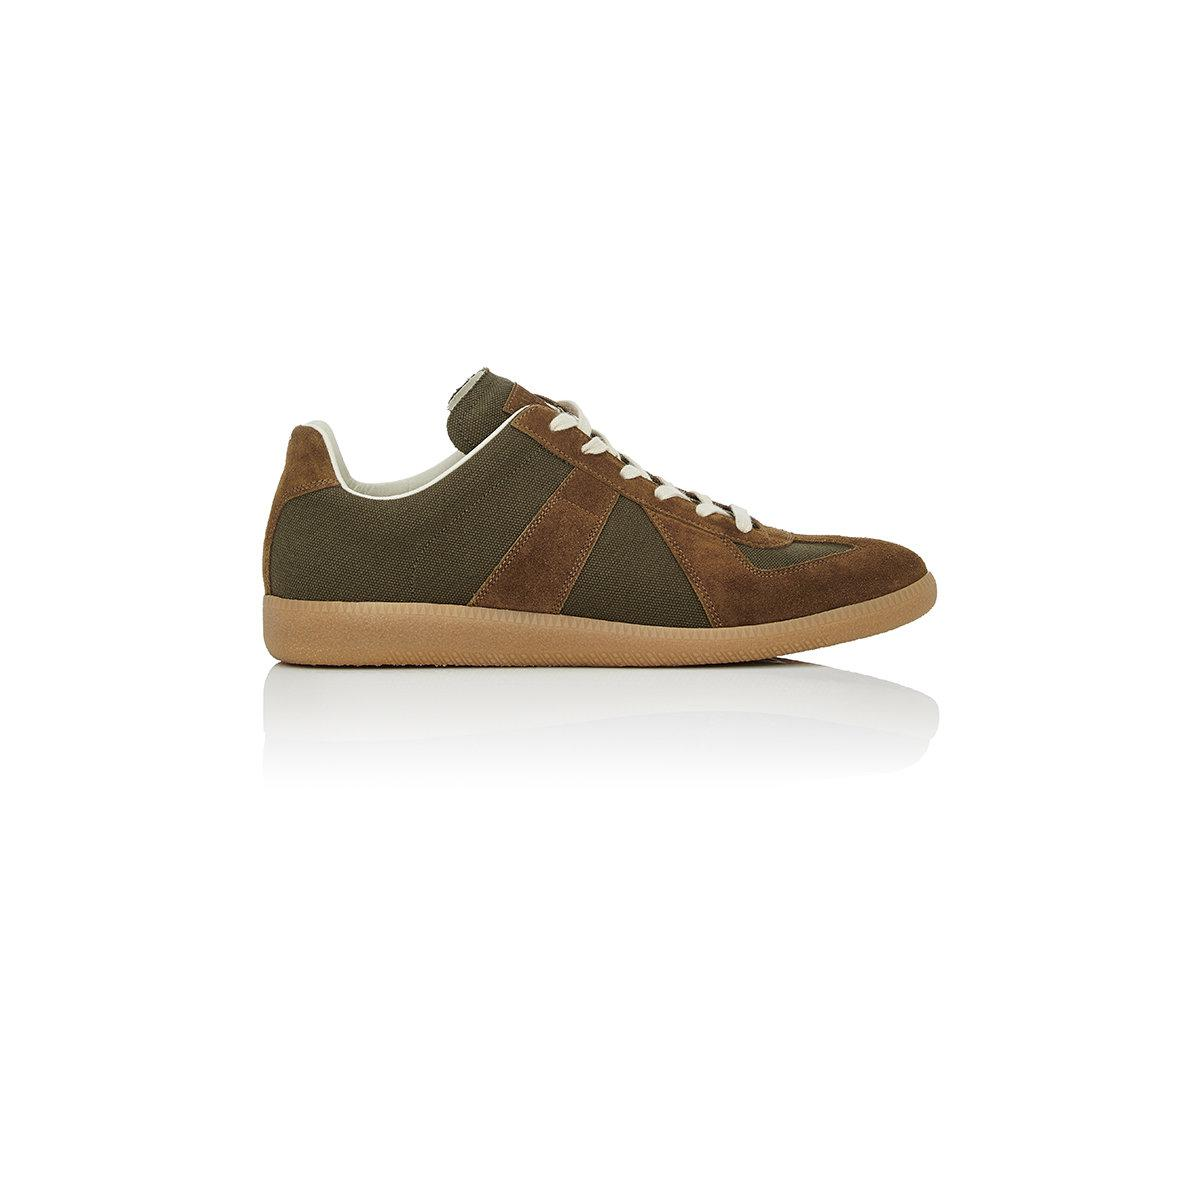 maison margiela replica canvas suede trainers in green for men lyst. Black Bedroom Furniture Sets. Home Design Ideas